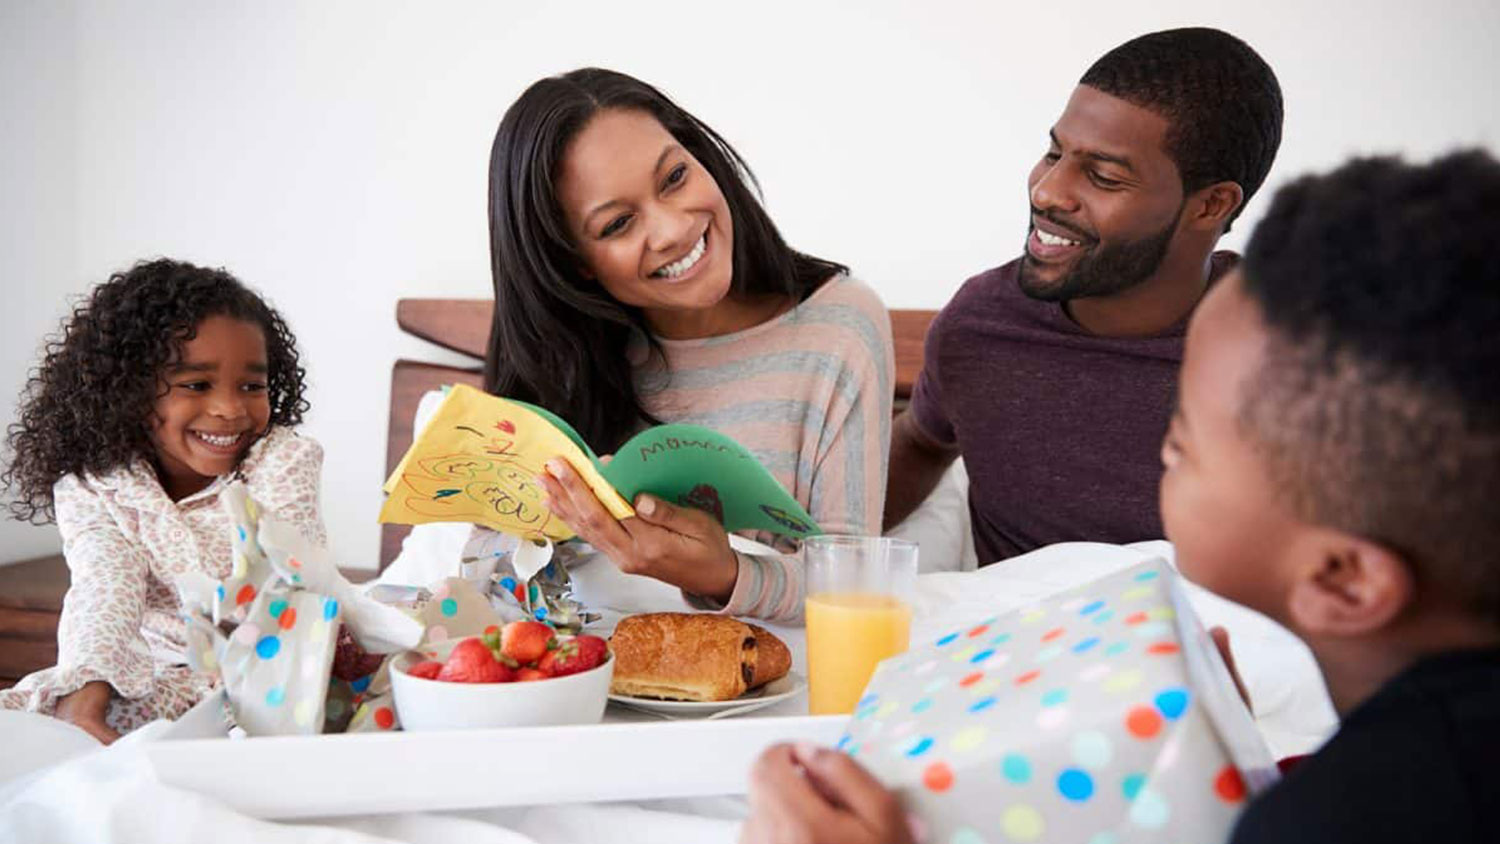 HOW TO TREAT MOM AT HOME THIS MOTHER'S DAY